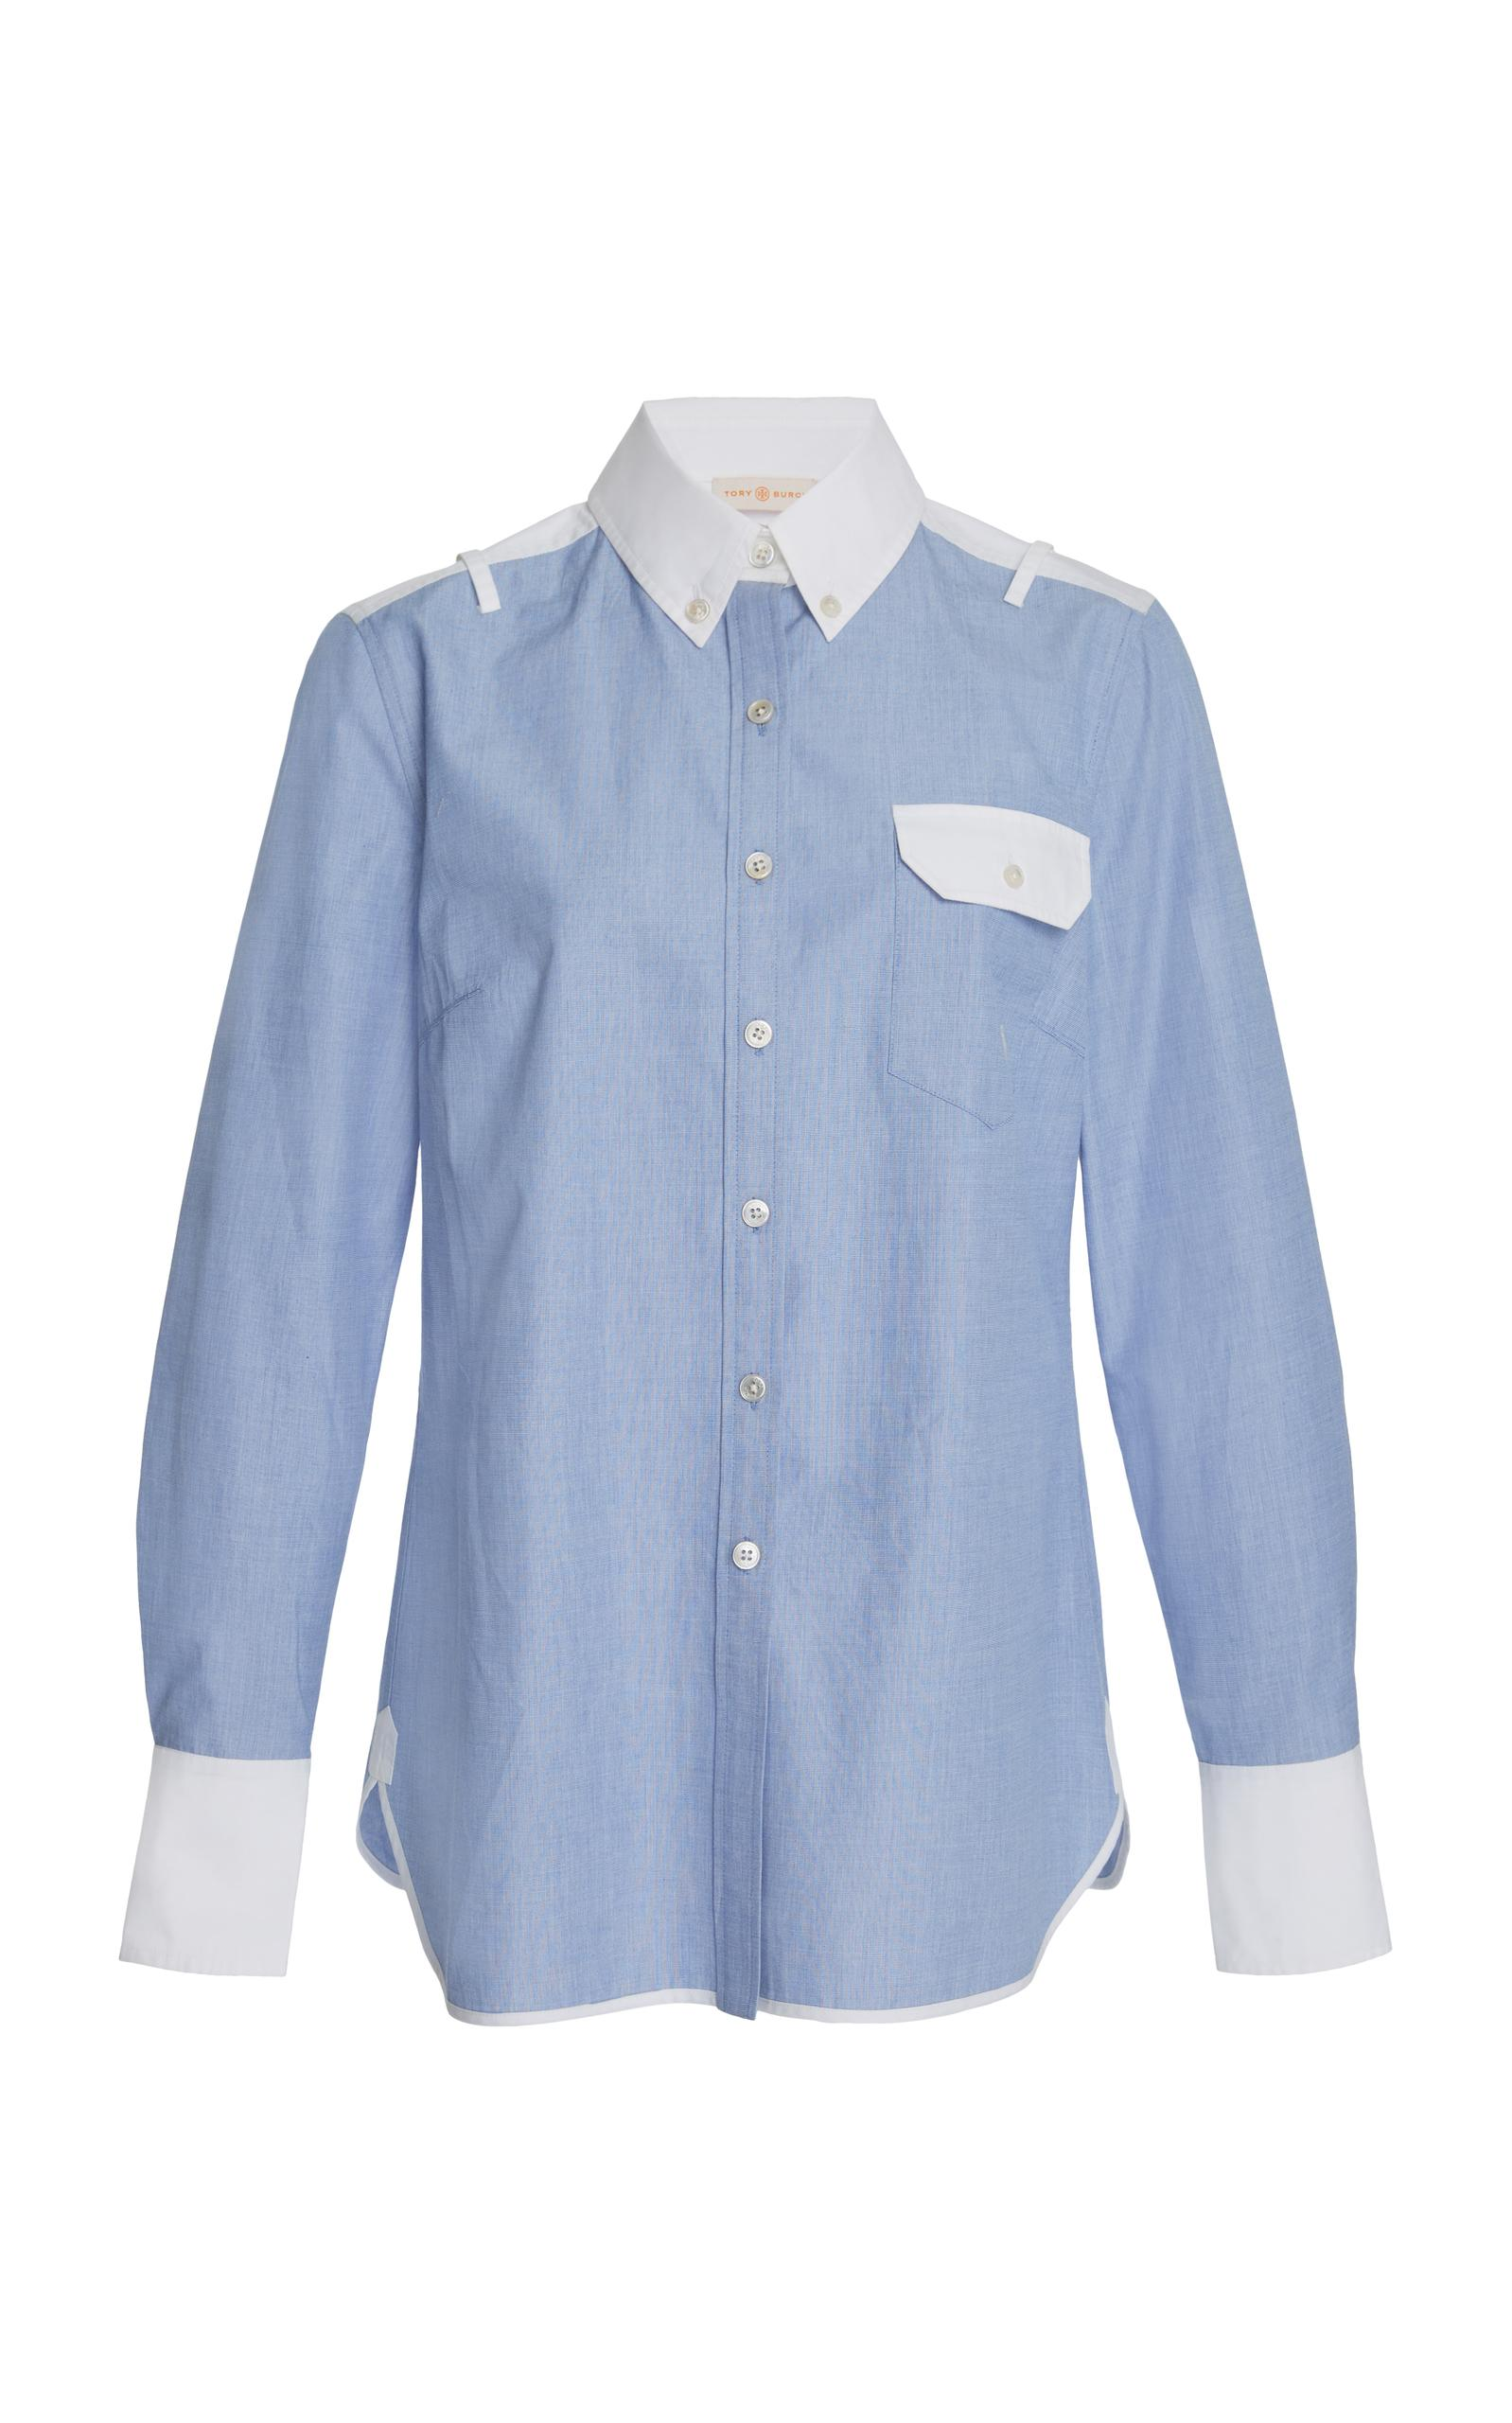 Tory burch piper button down top in blue lyst for Tory burch button down shirt